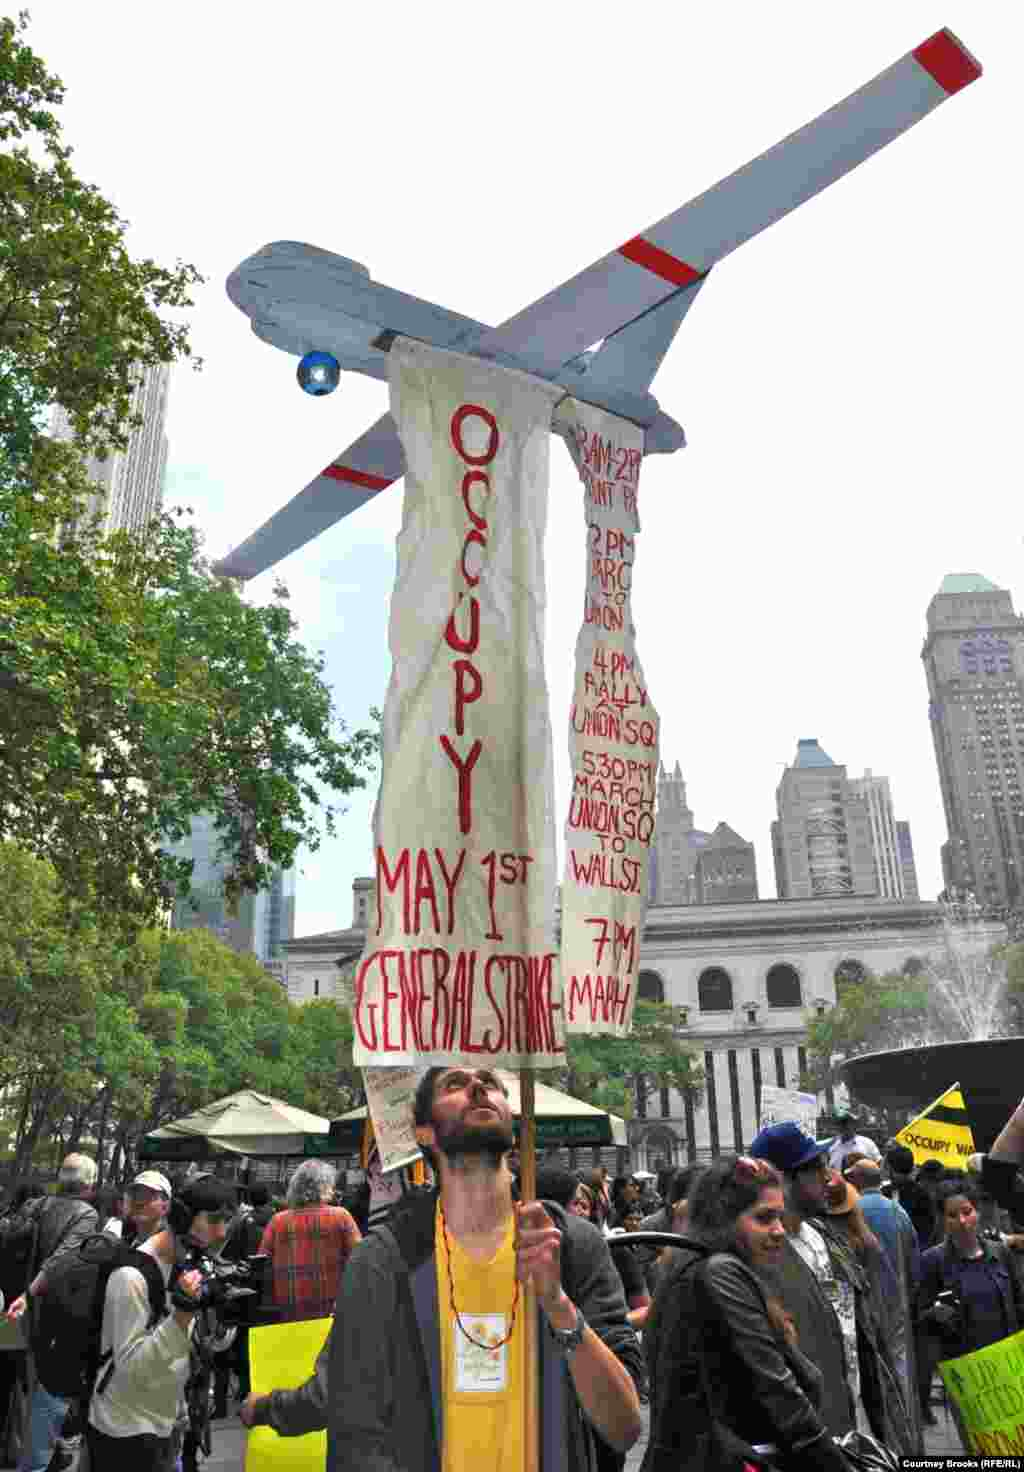 A protester carries an airplane from which hangs the OWS movement's agenda for May 1.